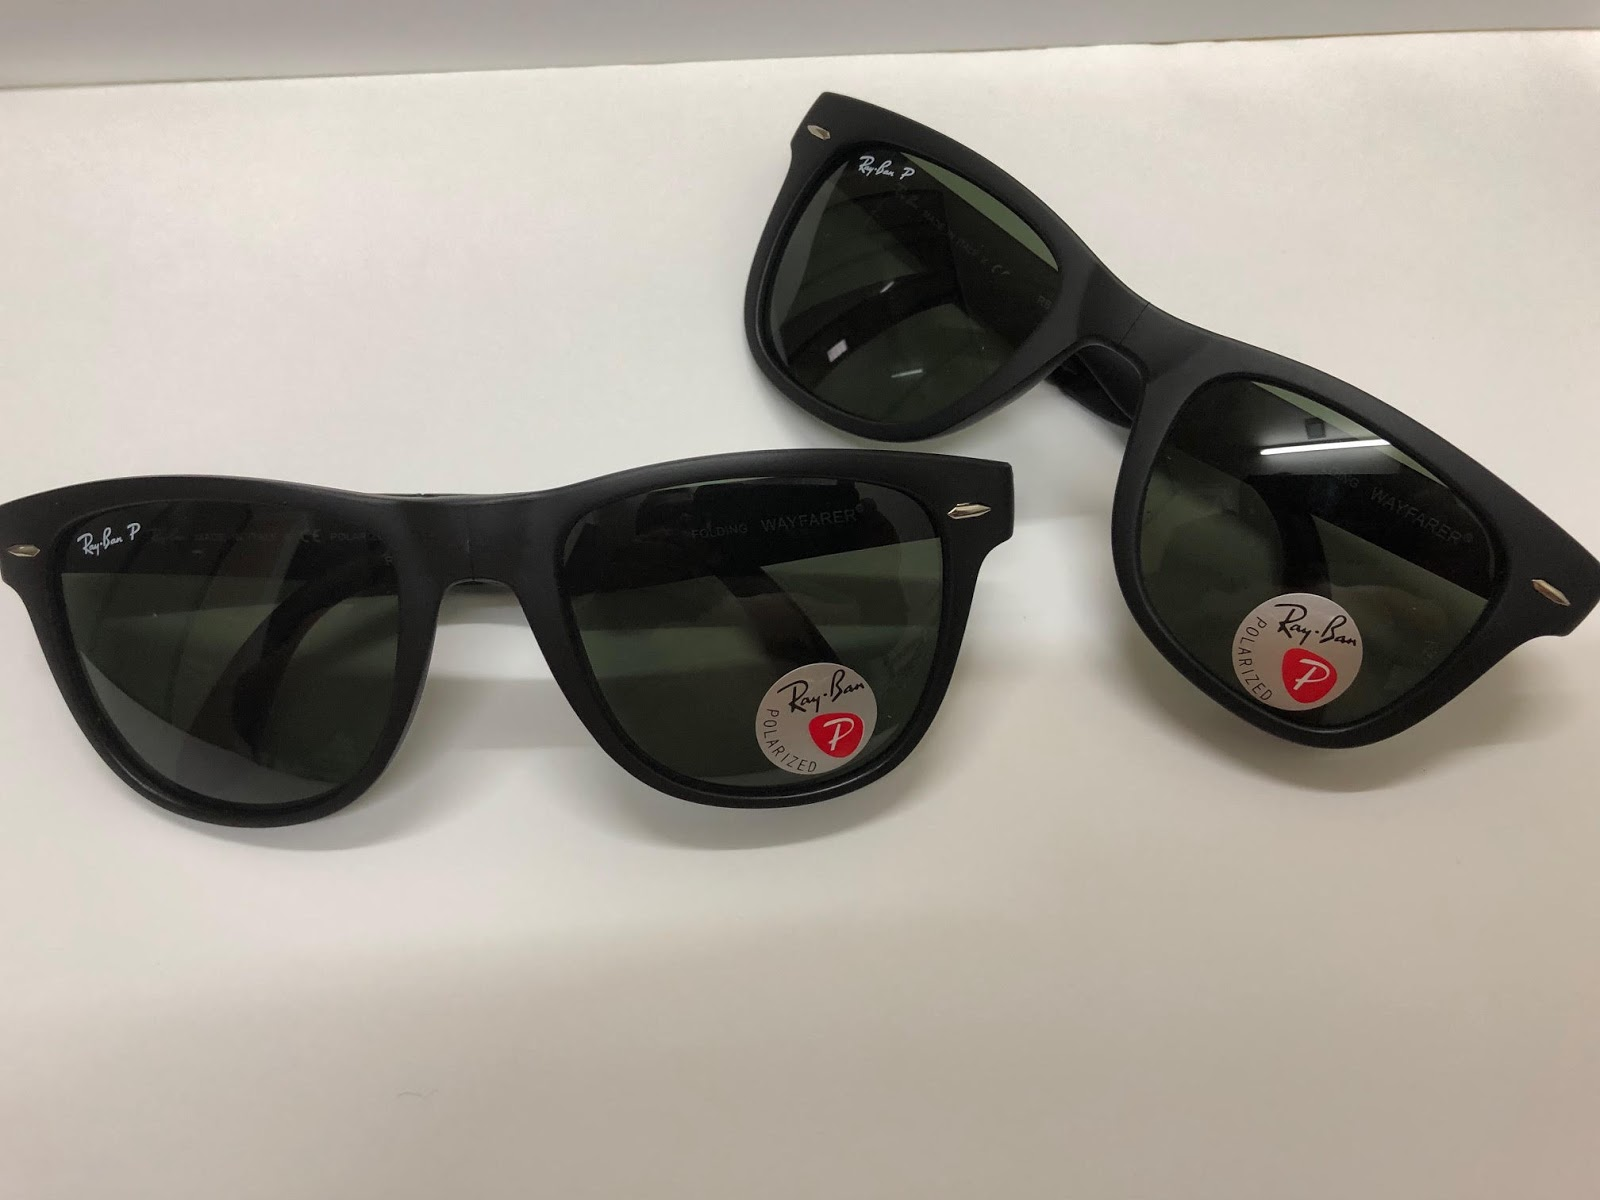 610d56dc85 Folding RB4105 Polarized 601-S 58 50mm (SOLD OUT)